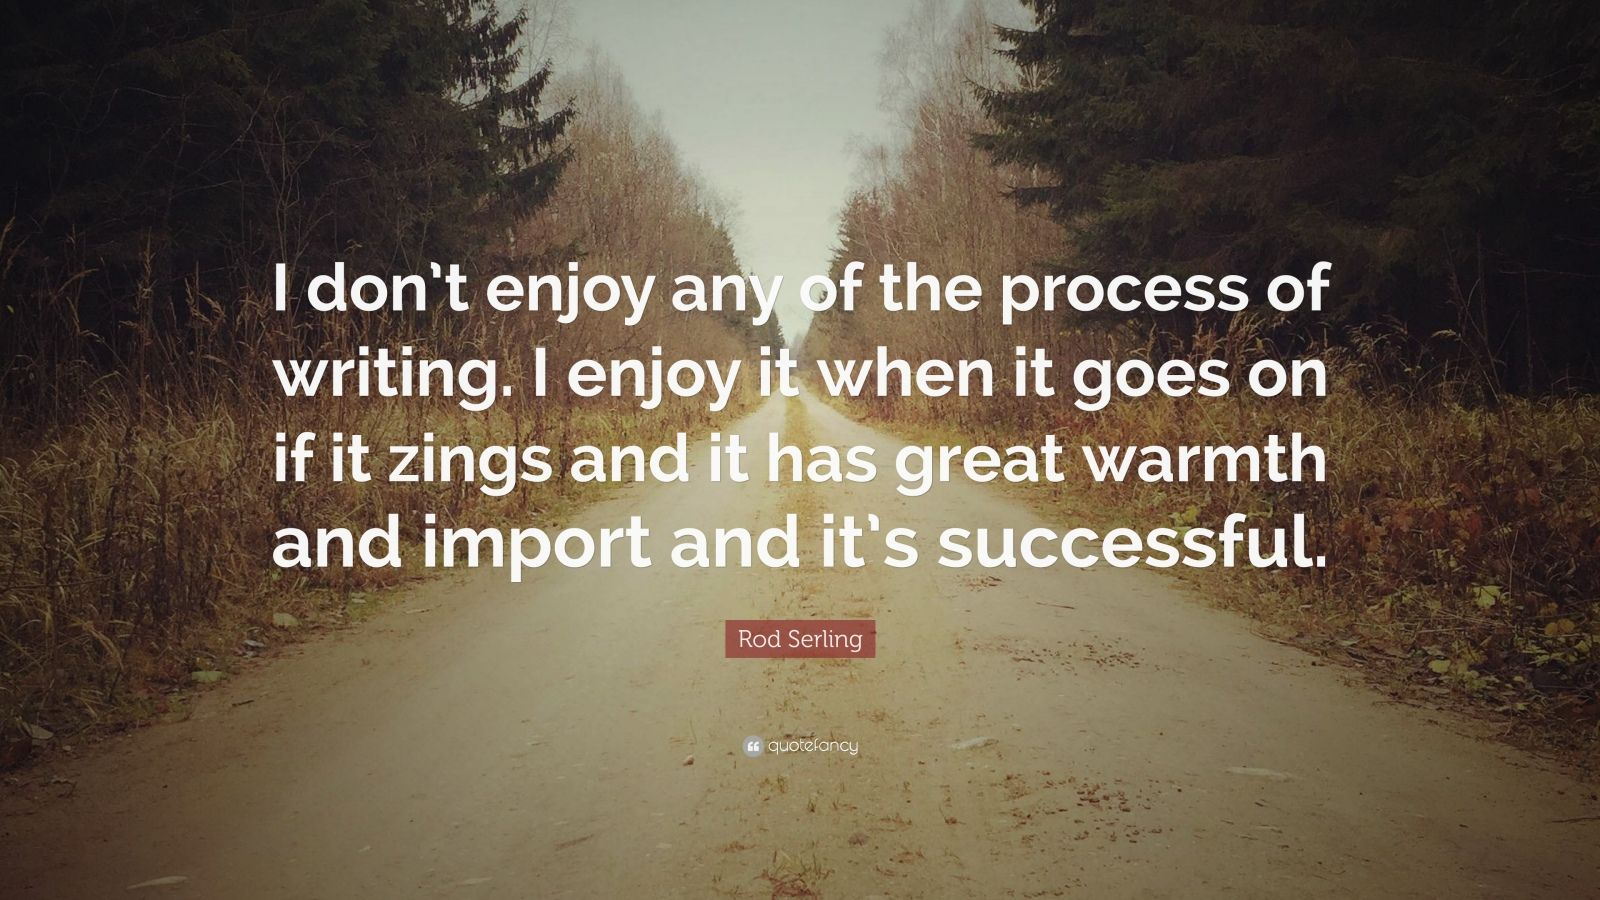 """Rod Serling Quote: """"I don't enjoy any of the process of writing. I enjoy it when it goes on if it zings and it has great warmth and import and it's successful."""""""